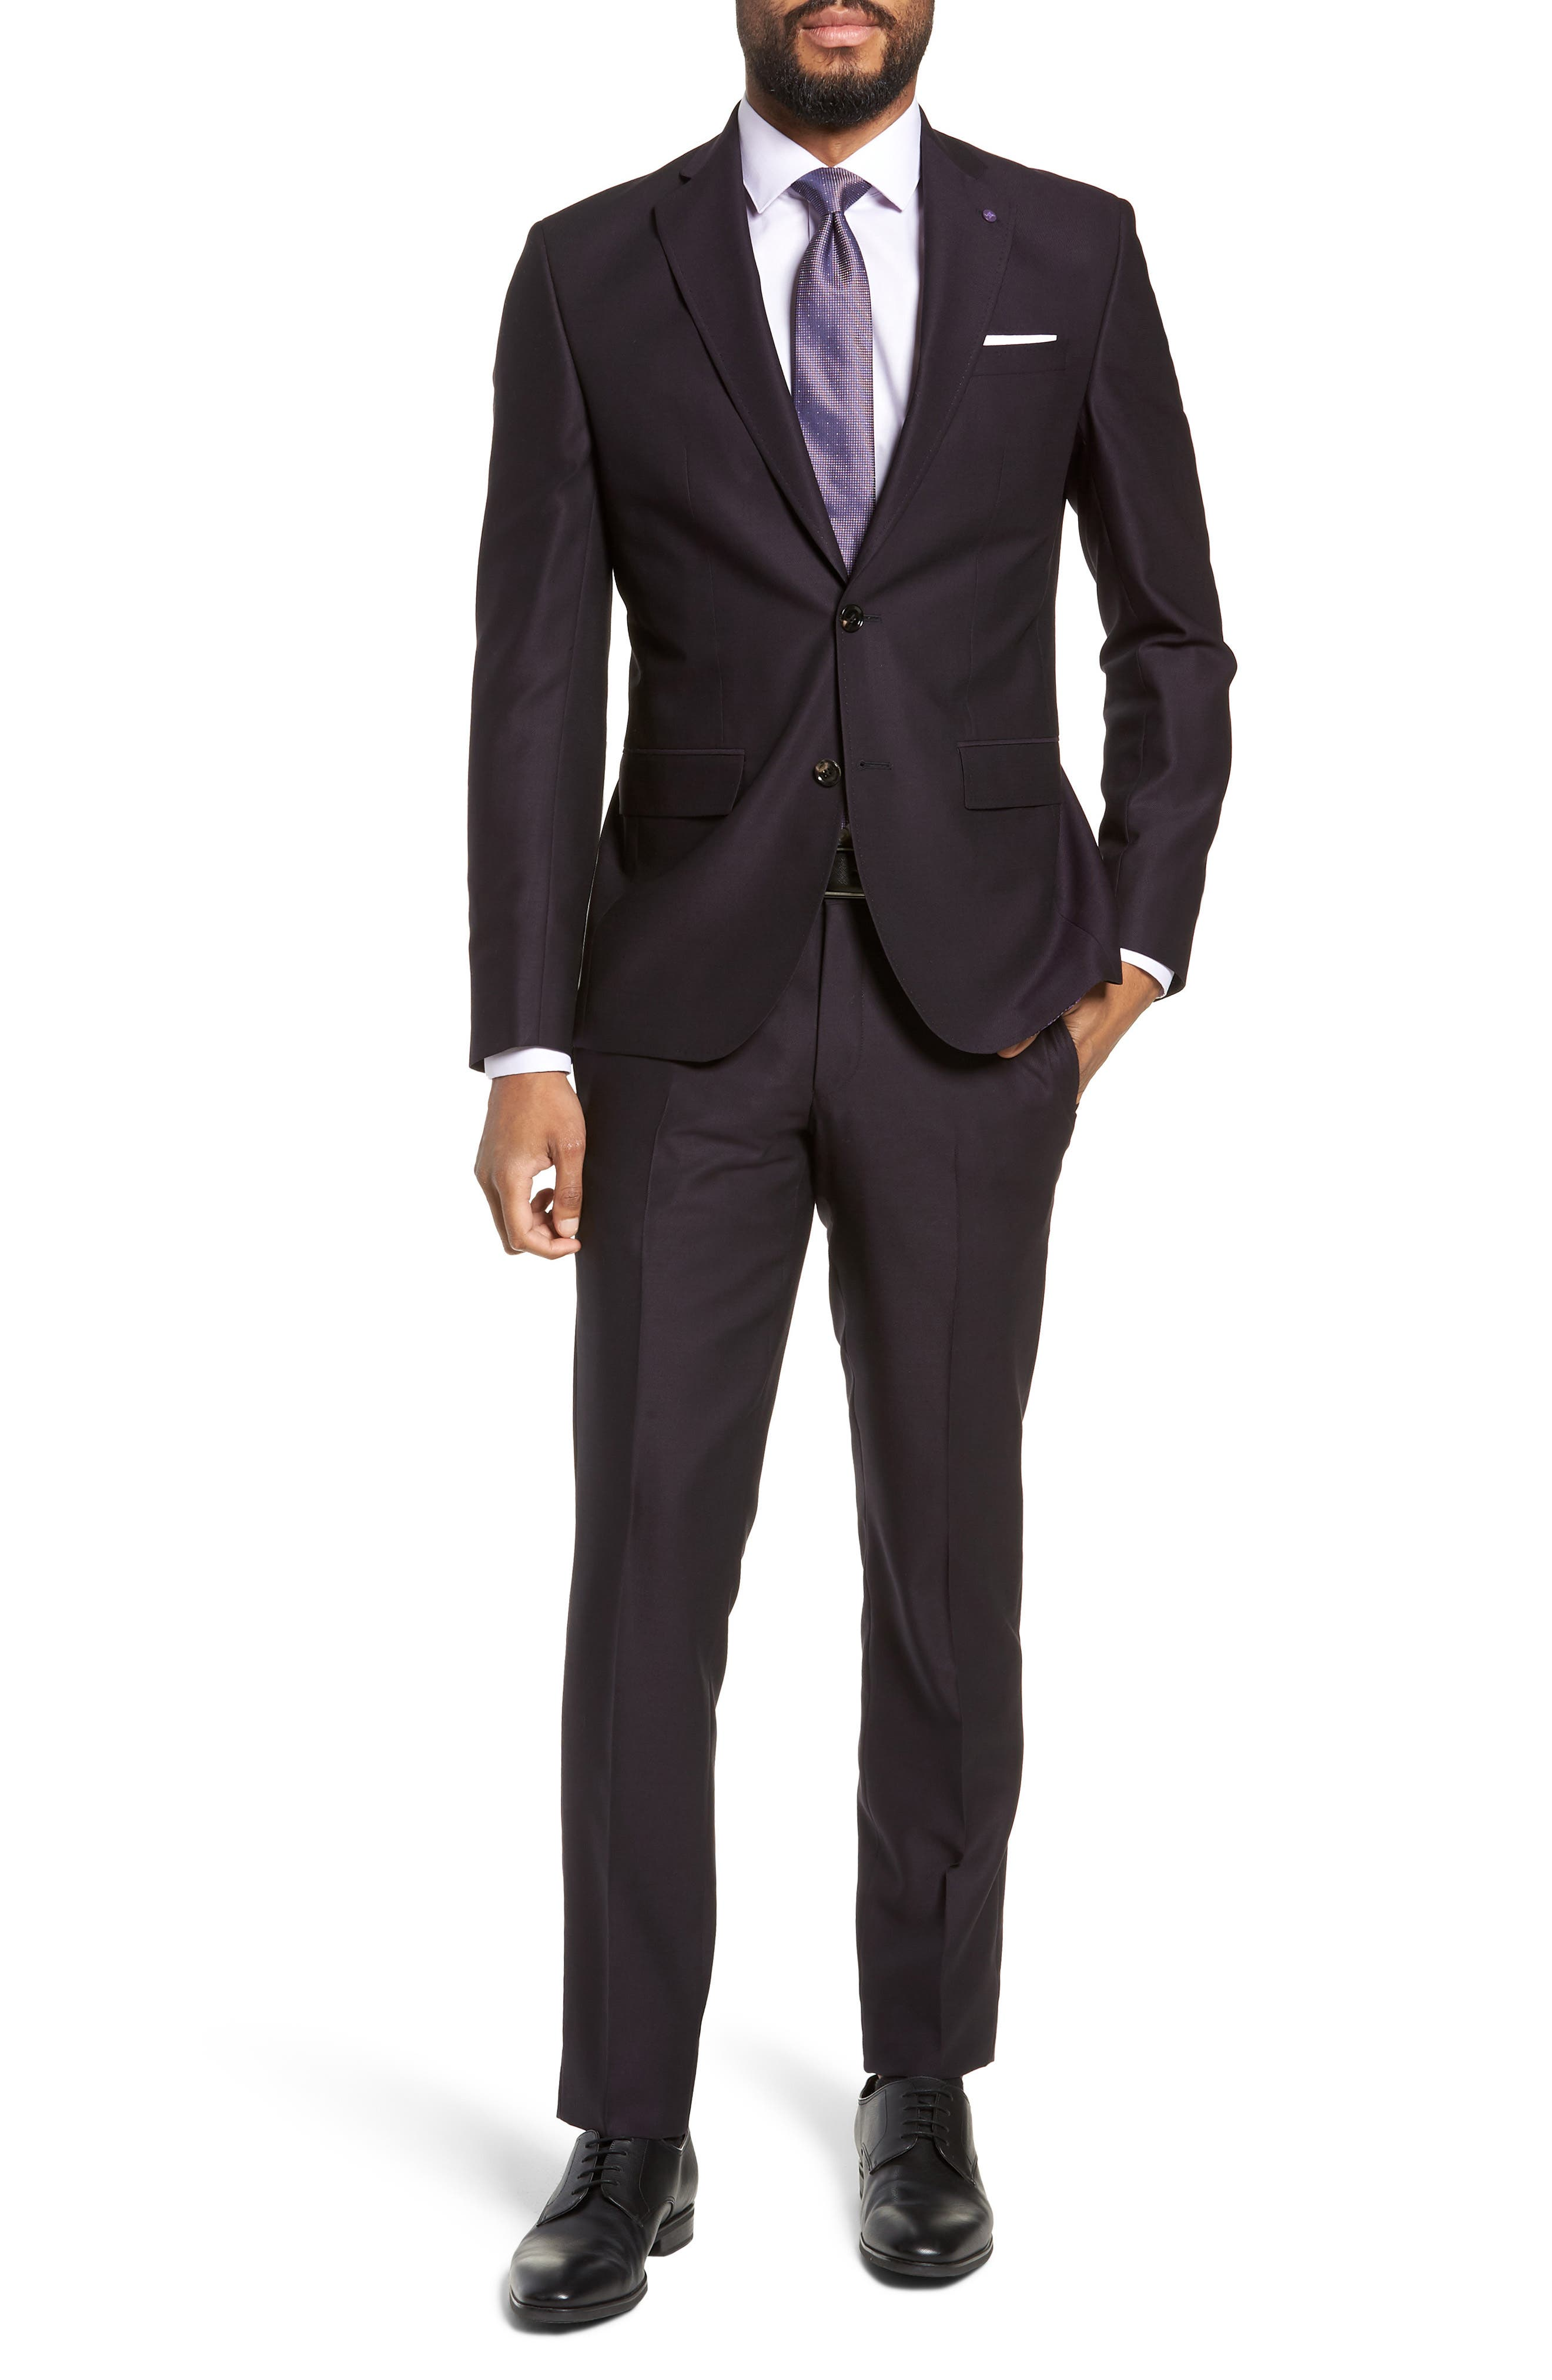 Roger Extra Trim Fit Solid Wool Suit,                             Main thumbnail 1, color,                             DEEP EGGPLANT